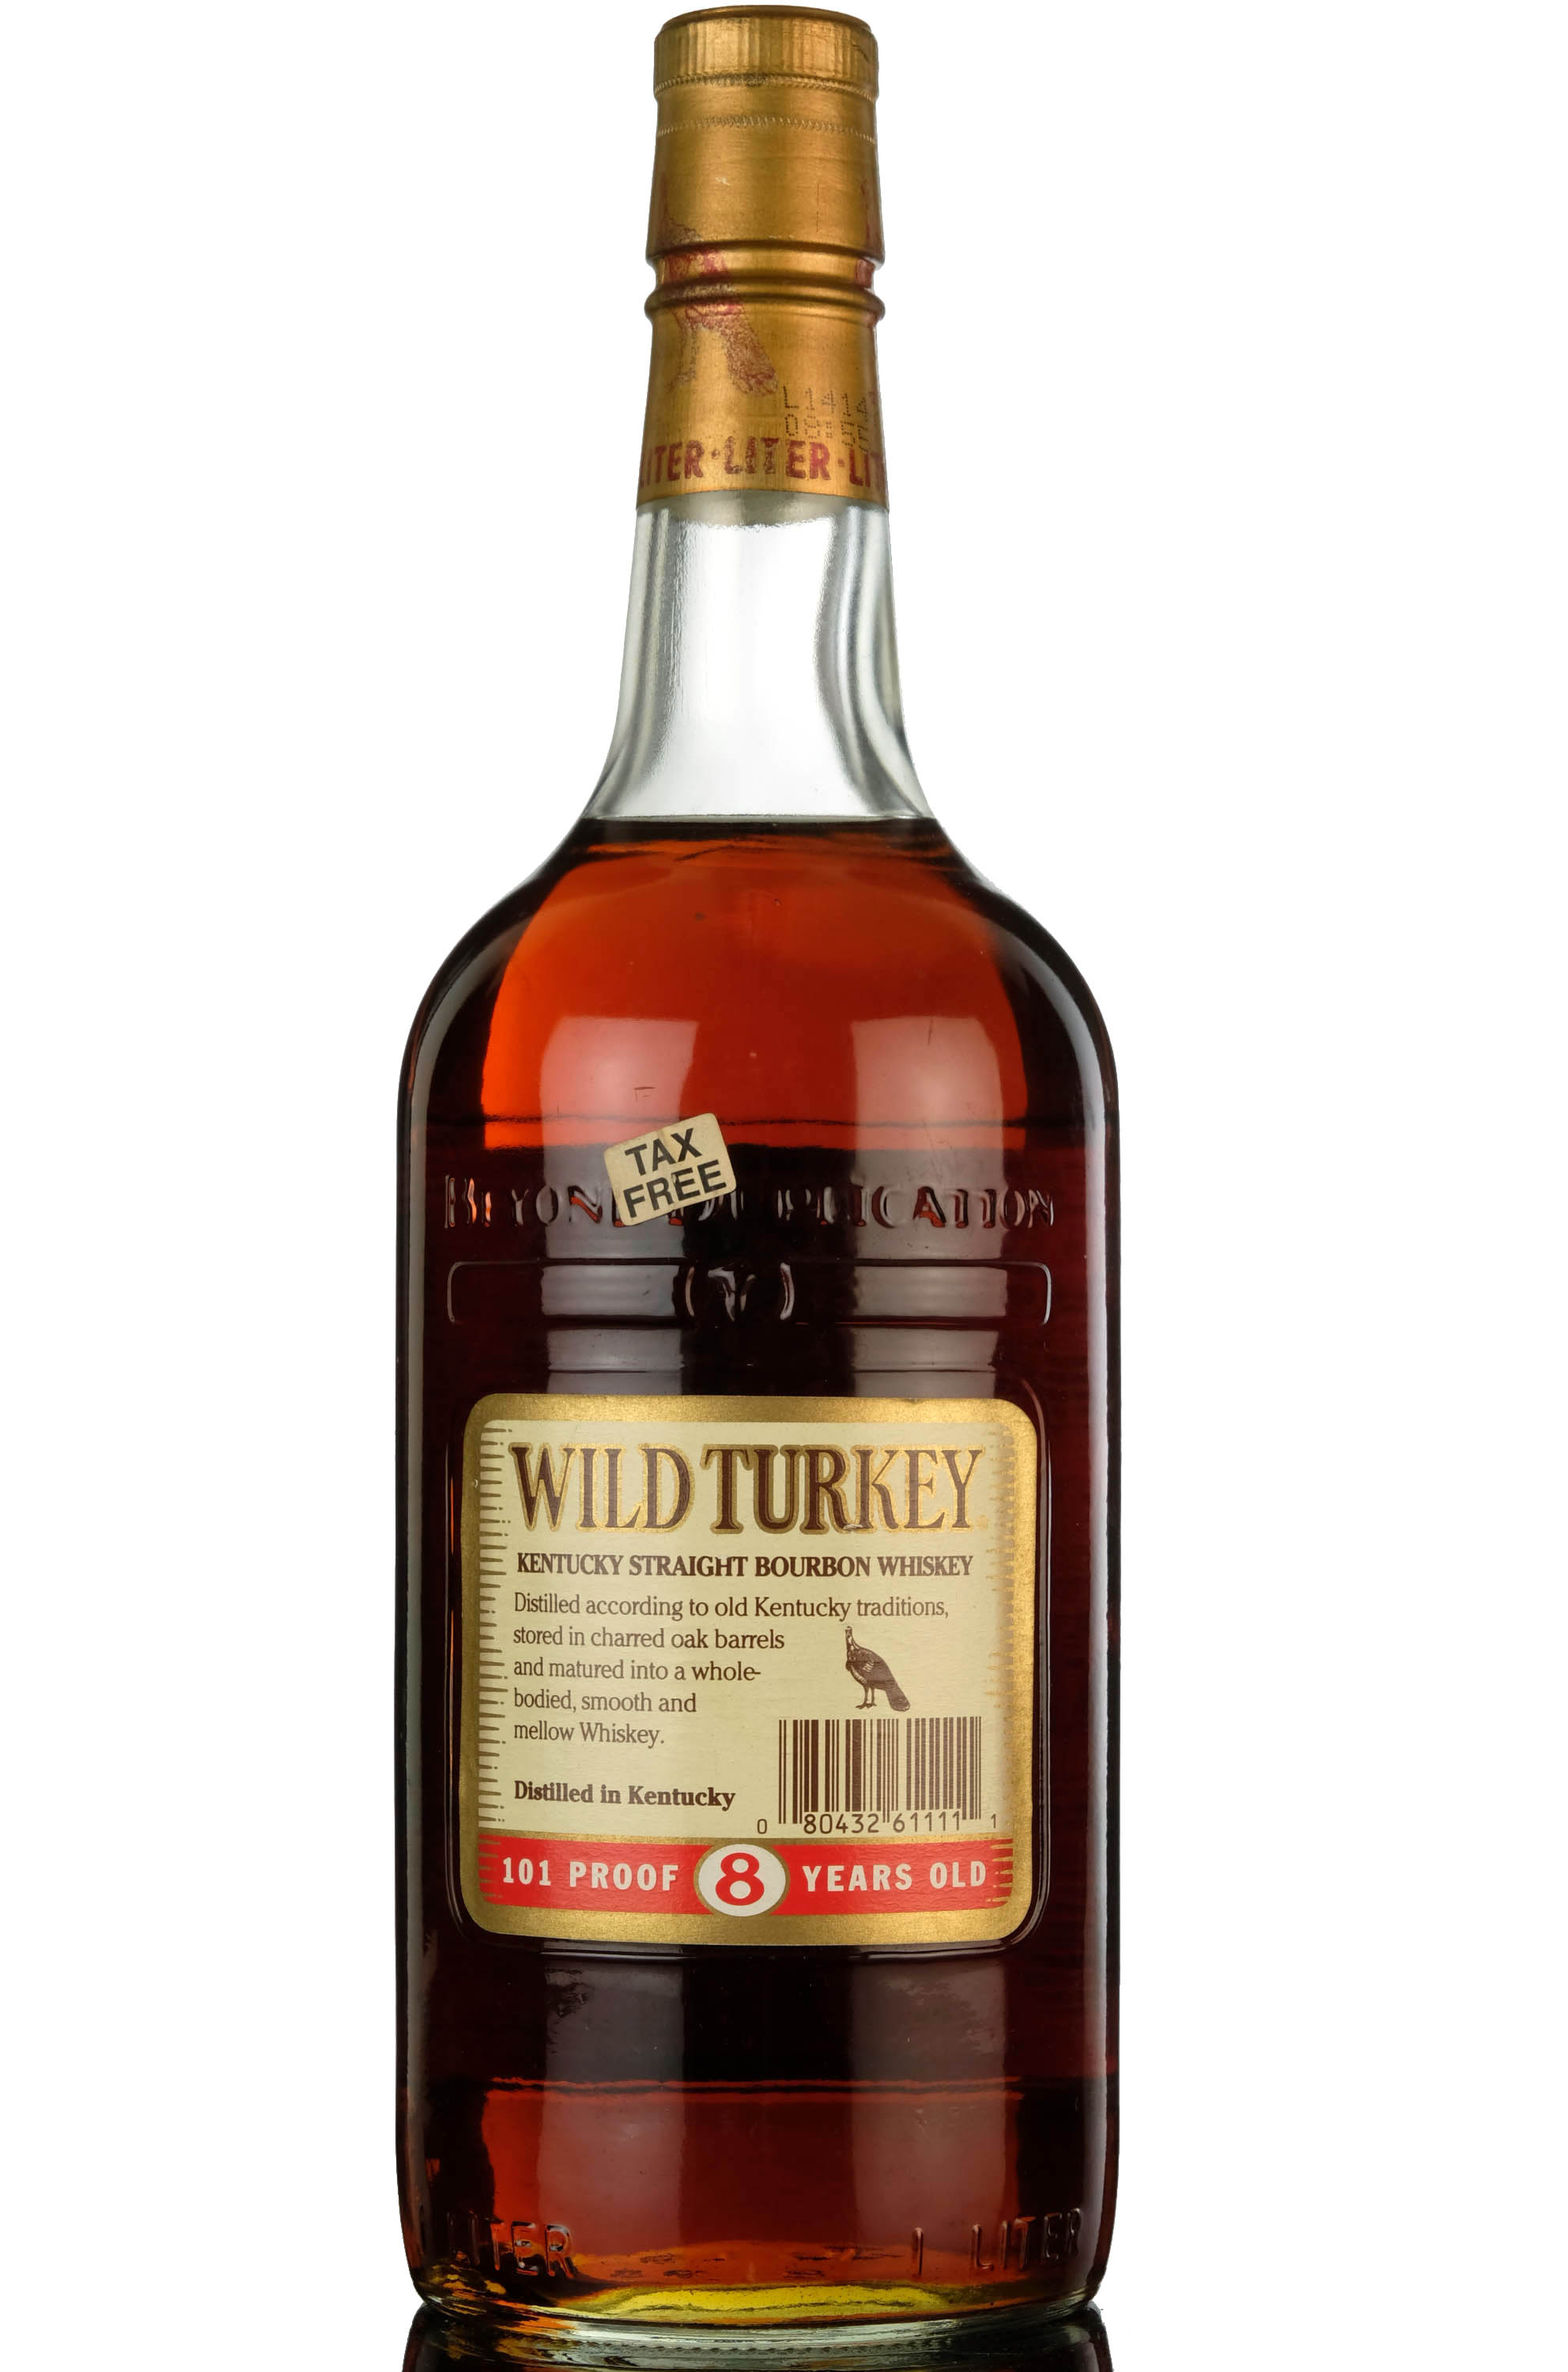 wild turkey 8 year old - kentucky straight bourbon whiskey - 101 proof - 1 litre